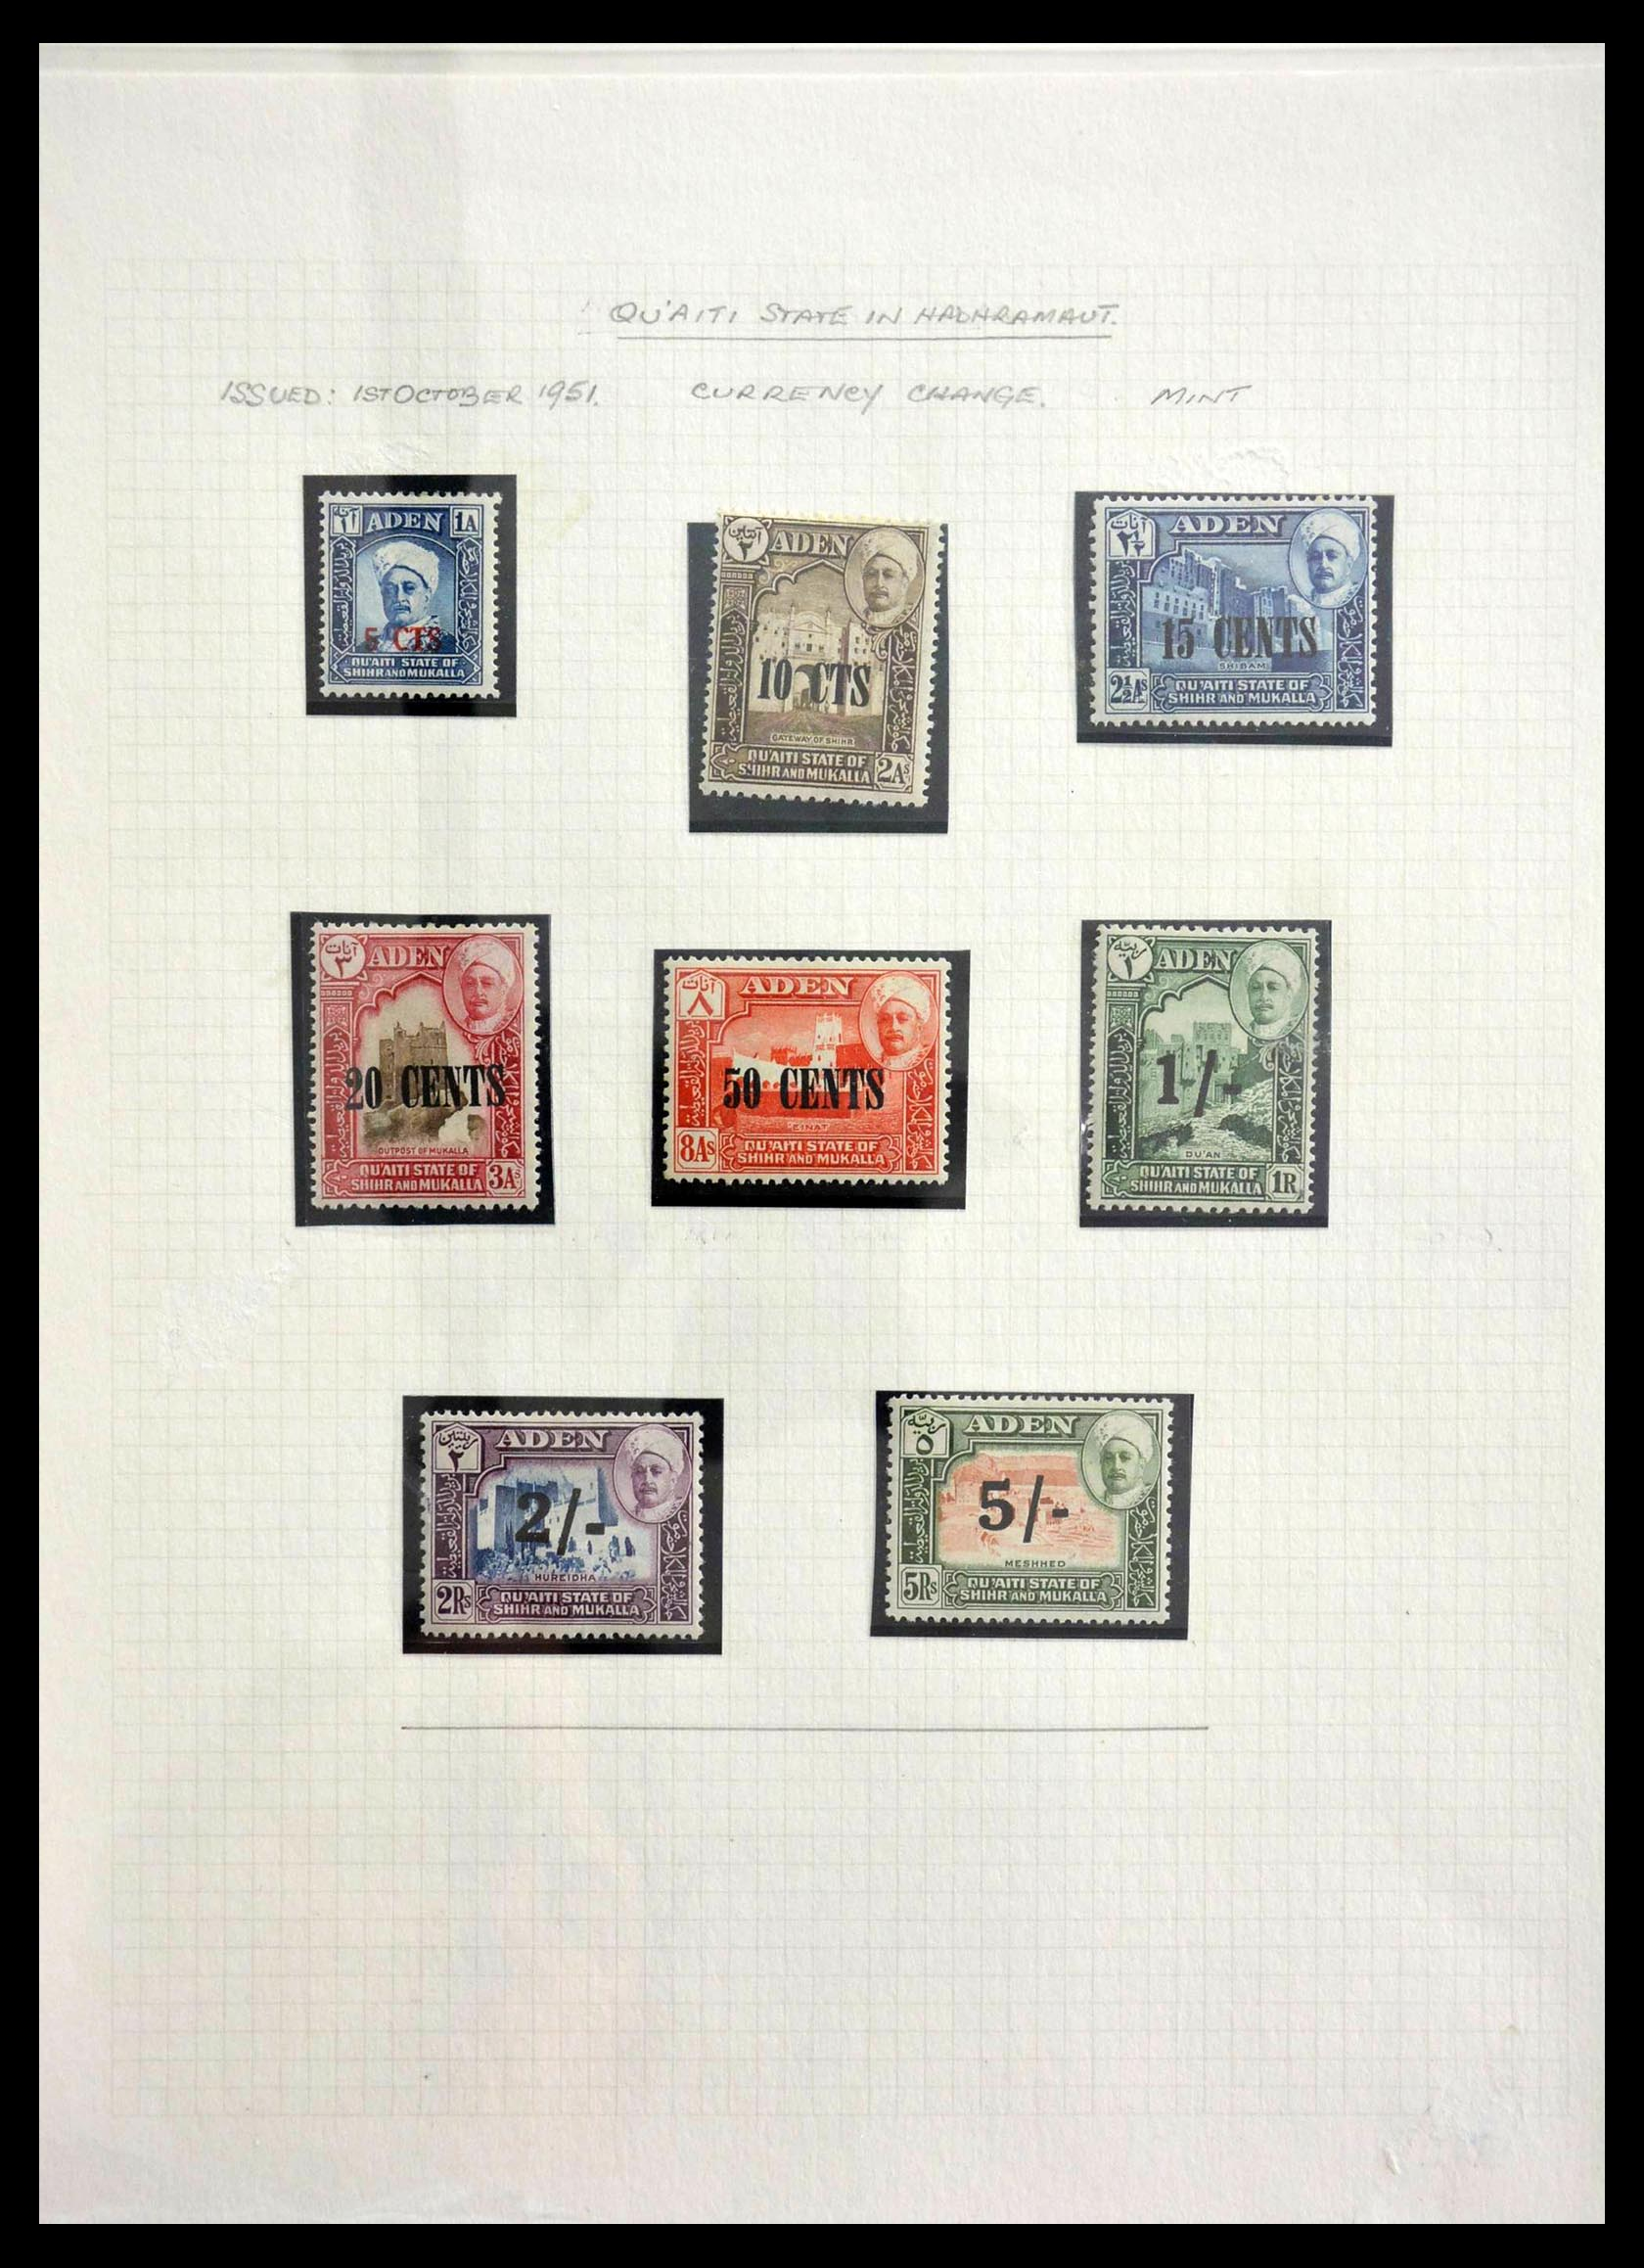 28672 015 - Stamp collection 28672 Aden Qu'aiti State 1942-1966.